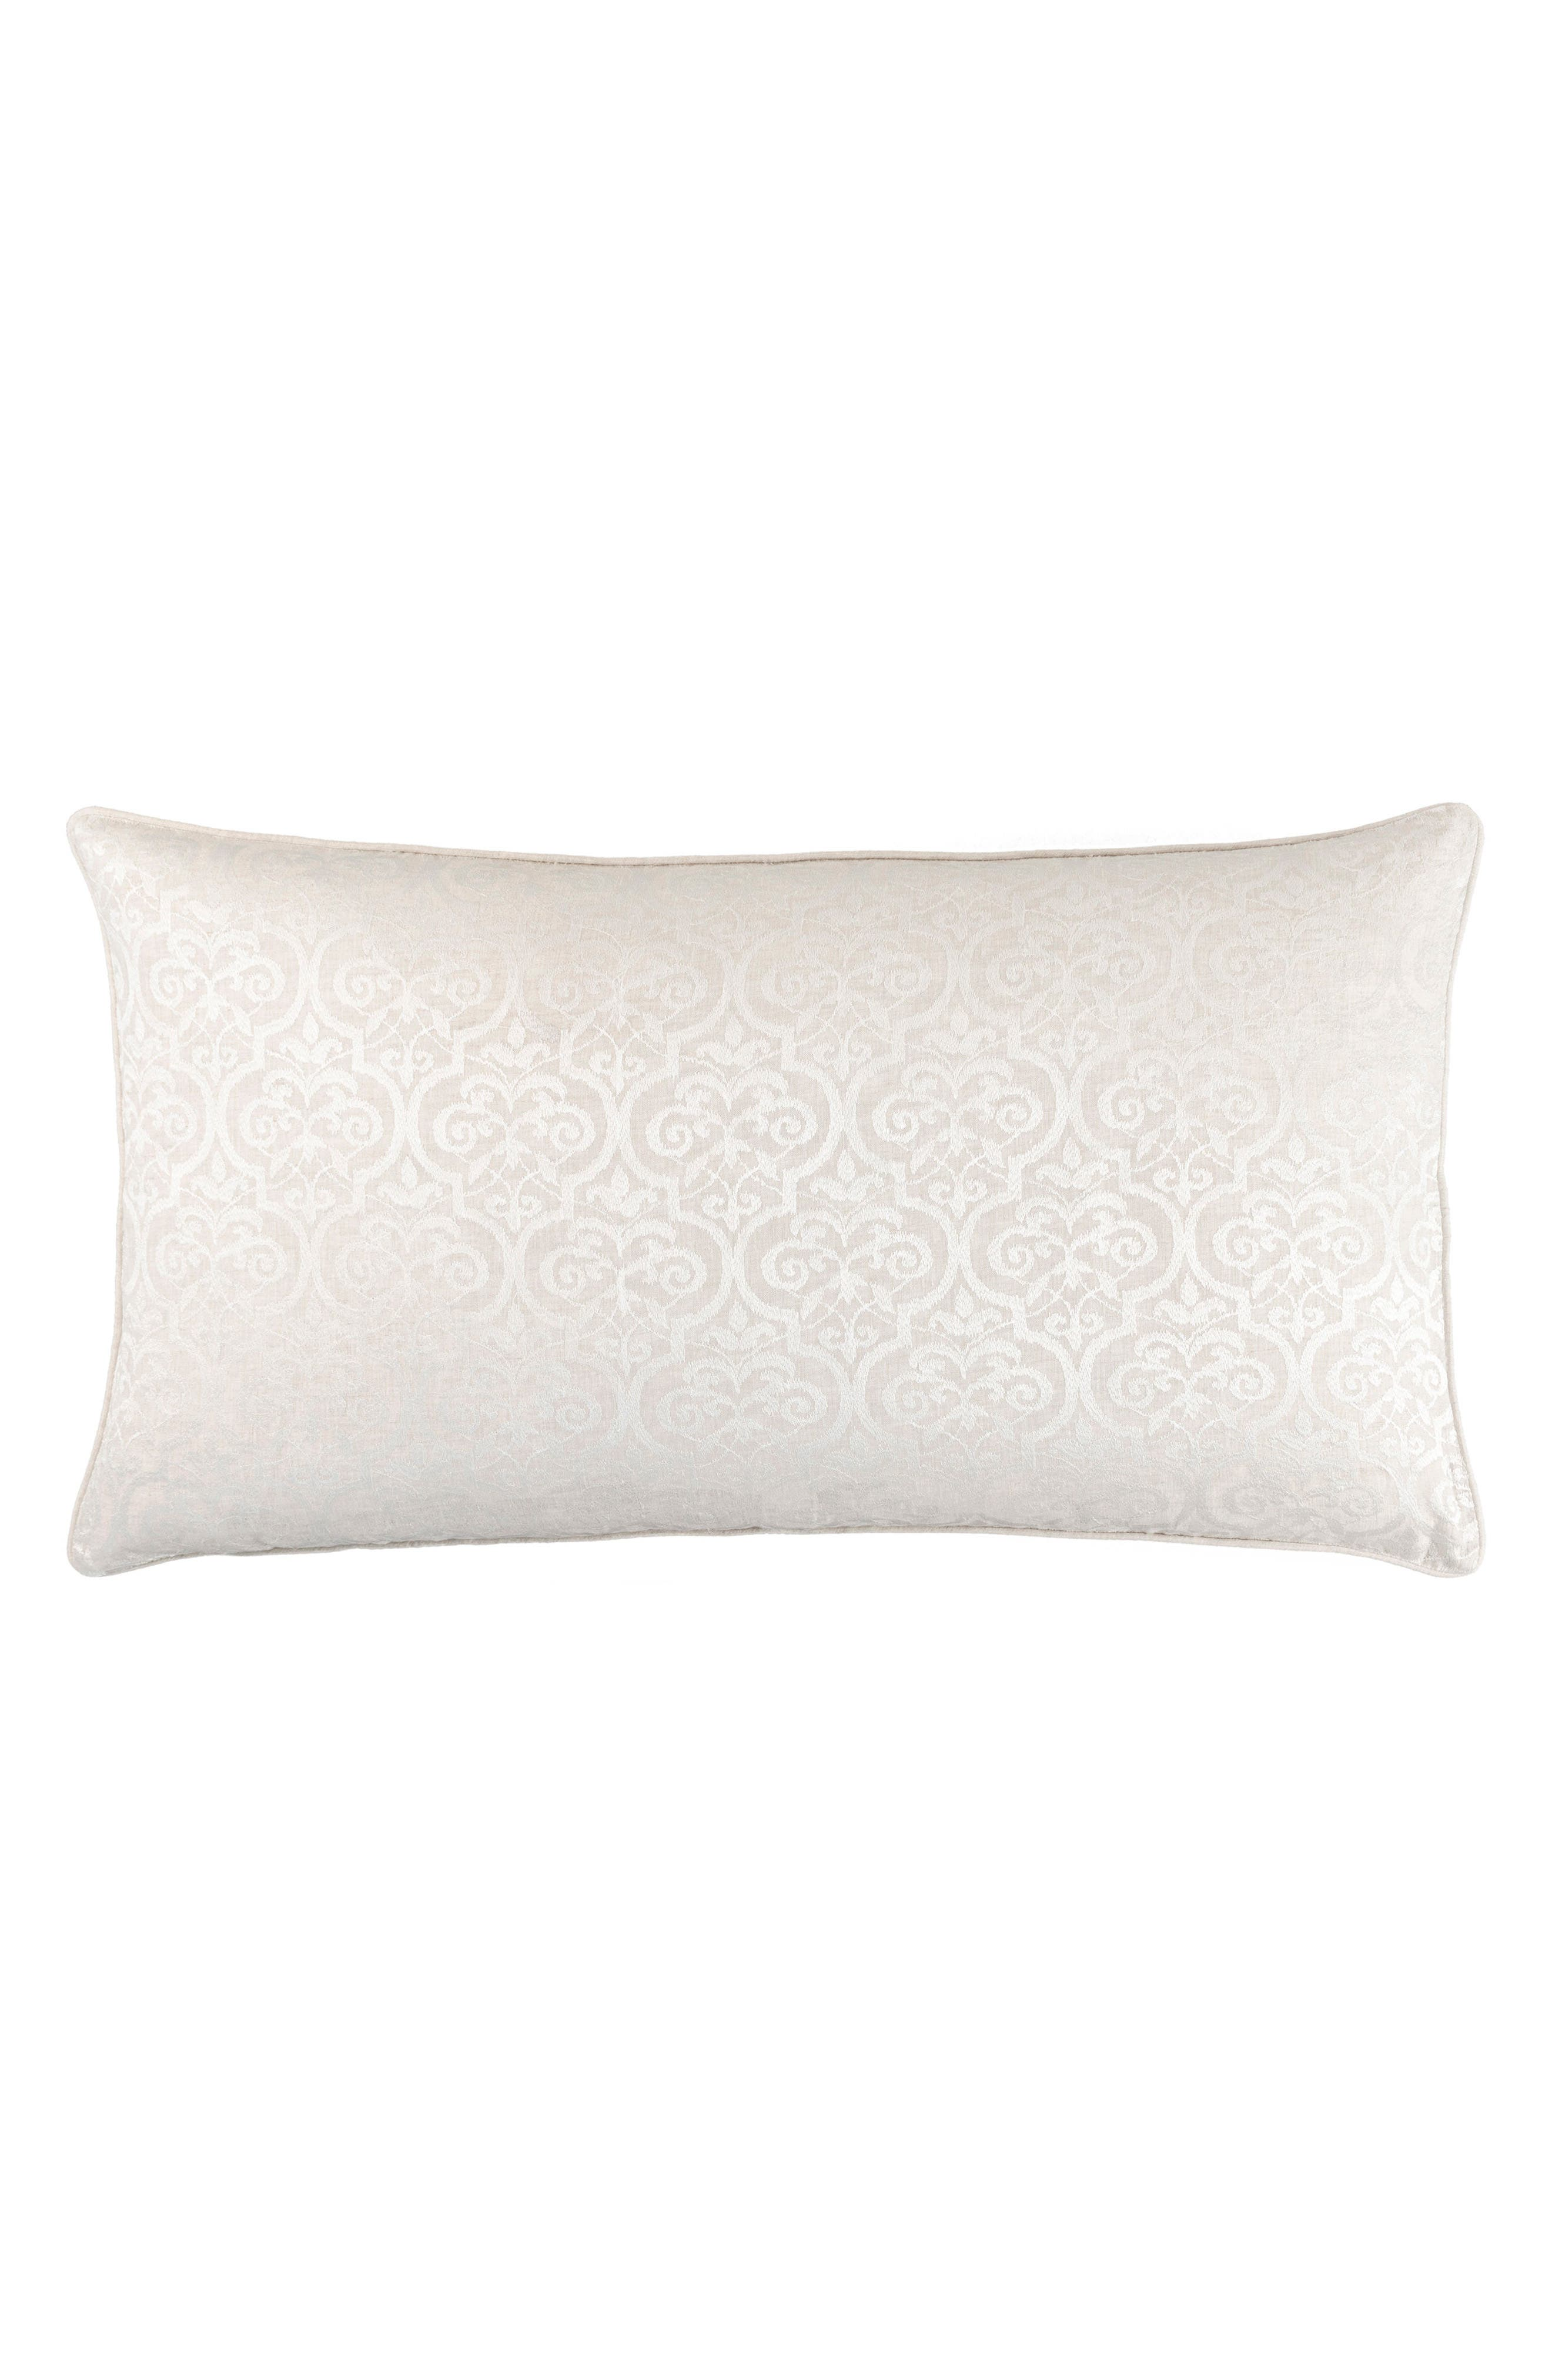 Gwendolyn Embroidered Accent Pillow,                         Main,                         color, 100